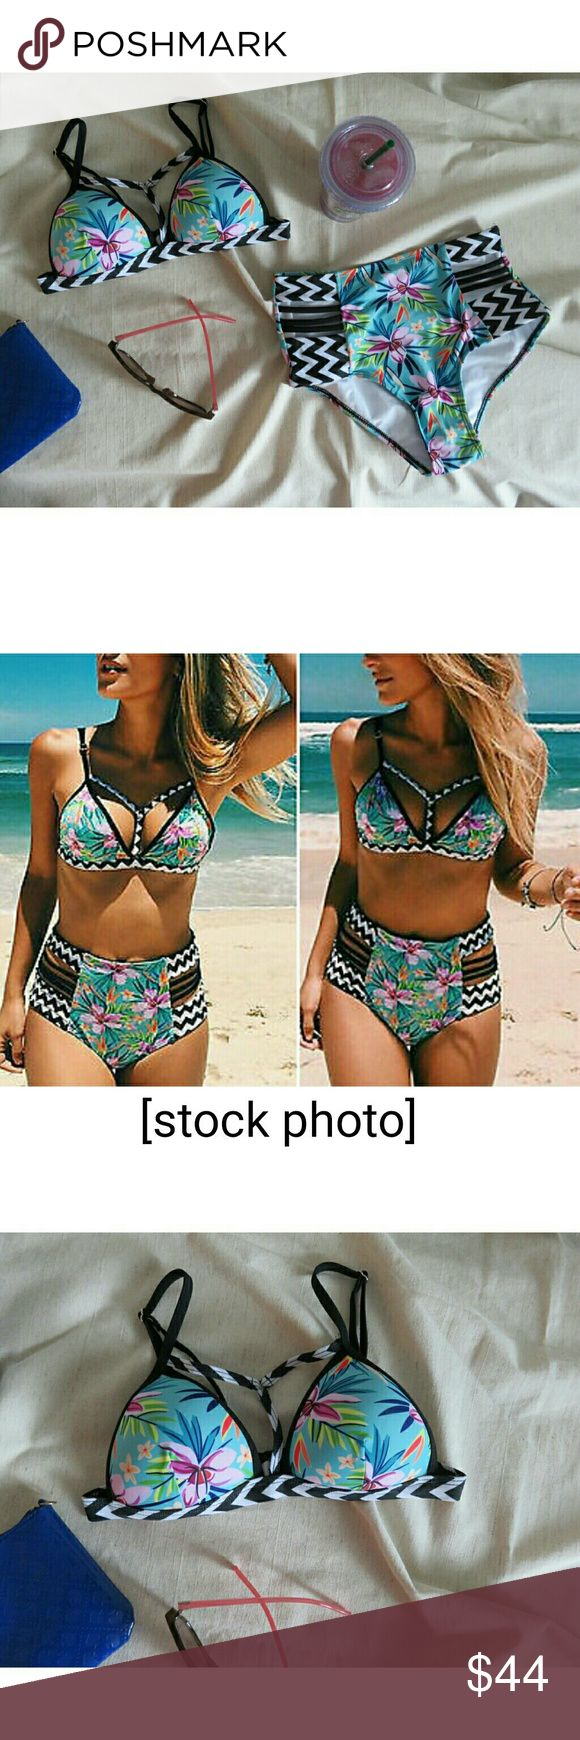 "NWT Caged Hi Rise Floral Bikini Set/2 Piece Super cute tropical flower pattern in aqua, turquoise, purple, yellow, orange, green, w/black & white chevron trim. High waist bikini bottom has black cage at hips, bikini top has cage around neckline. New w/ boutique tags/ never worn. Fully padded cups w/push up. Metal clasp at back, hygiene lining intact. Bottom fits size XS/2 best, top XXS/00. Measures lying flat (bottom) 12.5"" across waist, 5"" rise, 14"" across hips. (Top) about 26"" across band…"